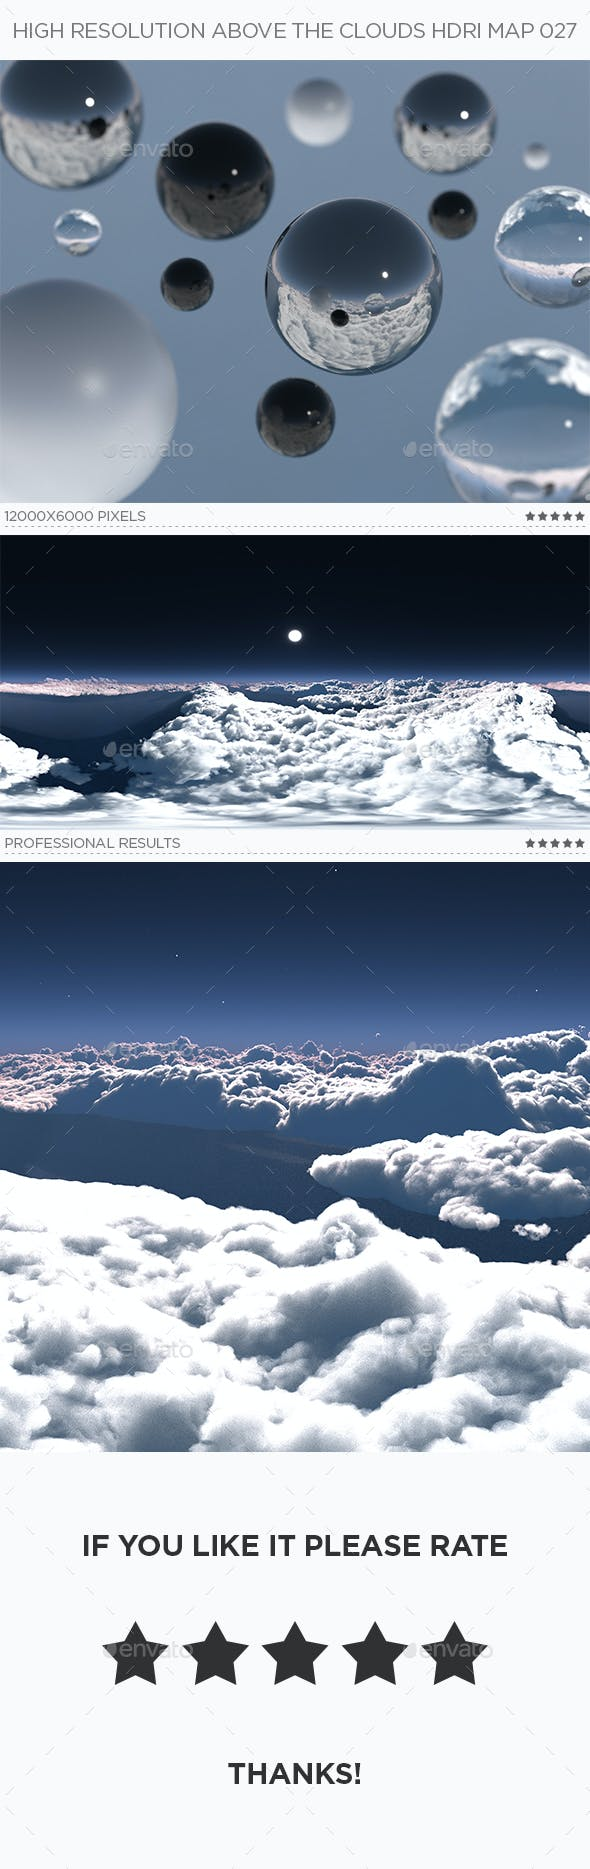 High Resolution Above The Clouds HDRi Map 027 - 3DOcean Item for Sale